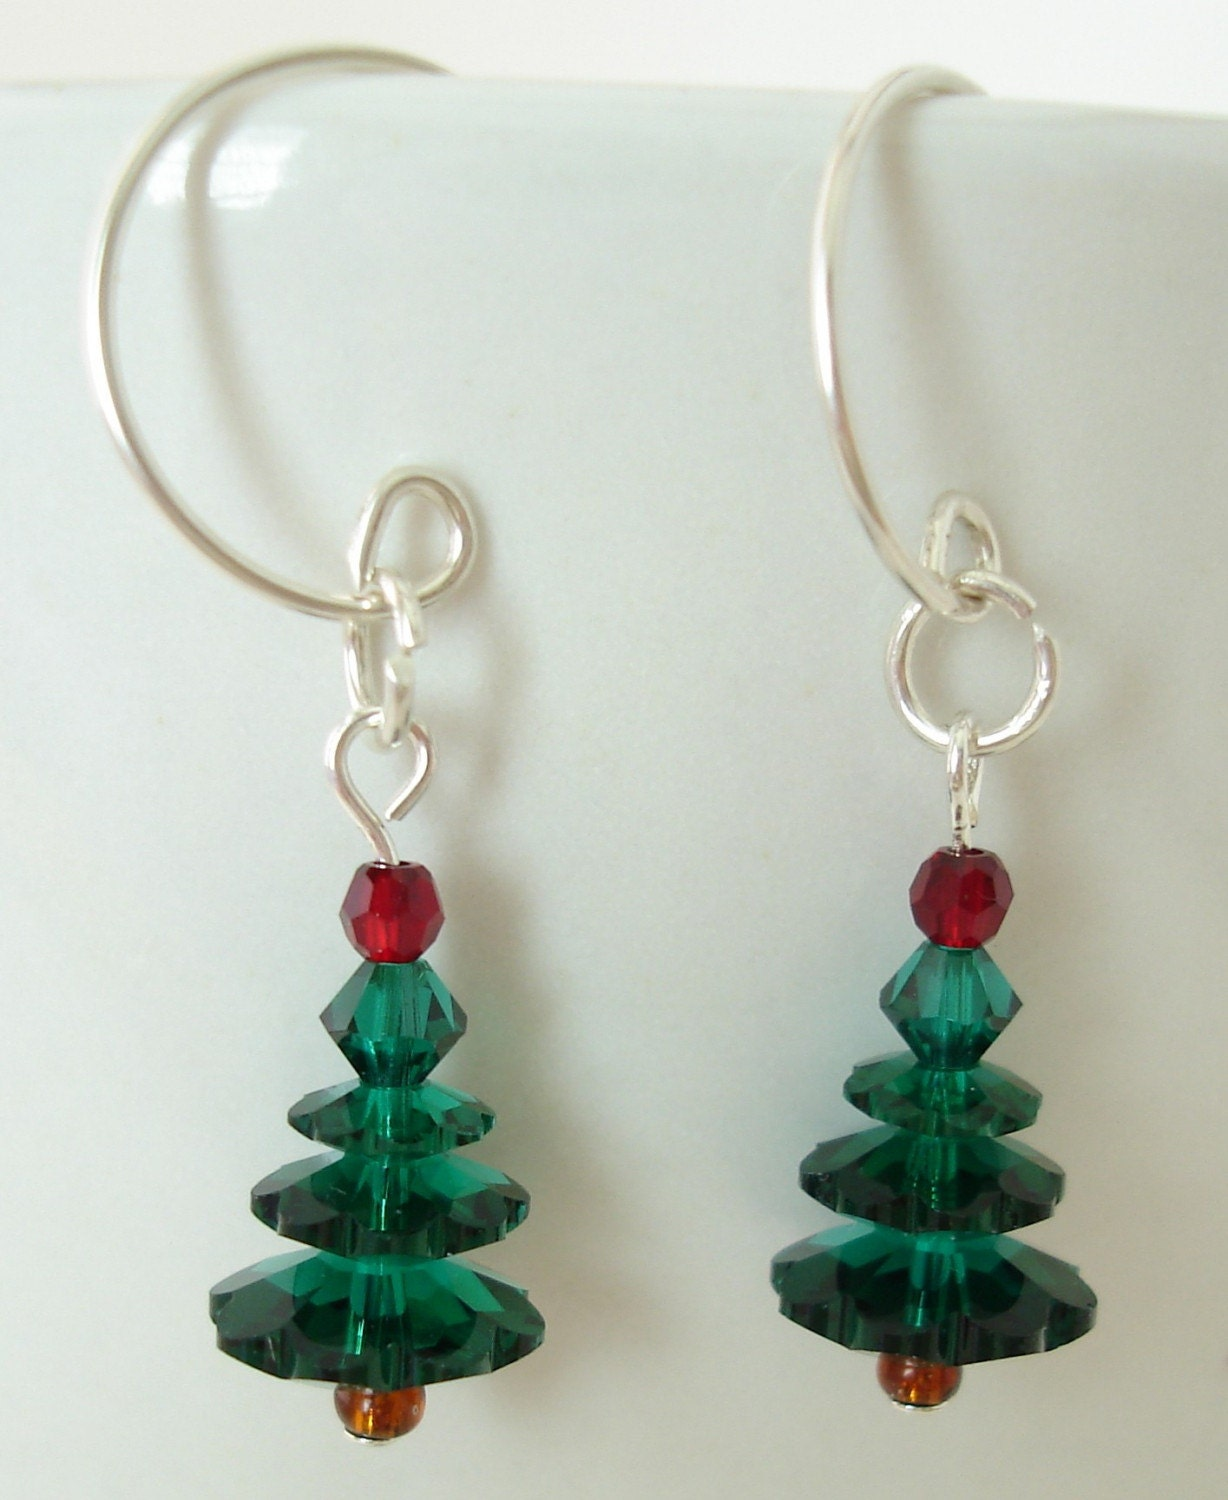 LIMITED EDITION - Swarovski and Sterling Christmas Tree earrings